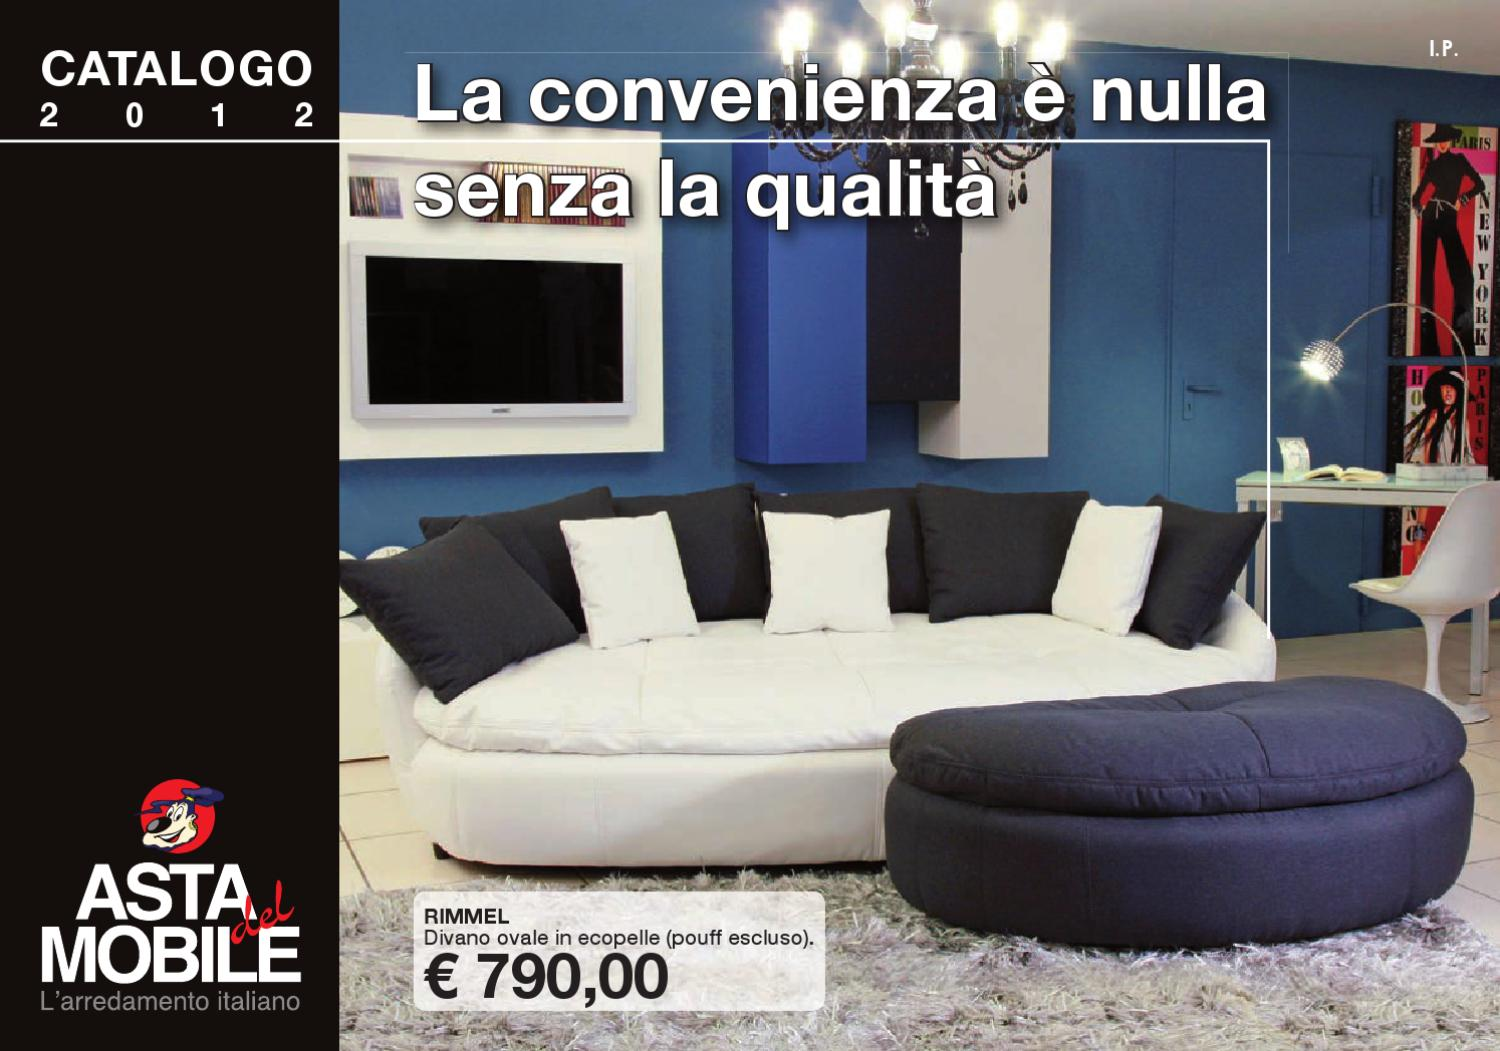 Asta del mobile catalogo 2012 by input torino srl issuu for Outlet del mobile torino